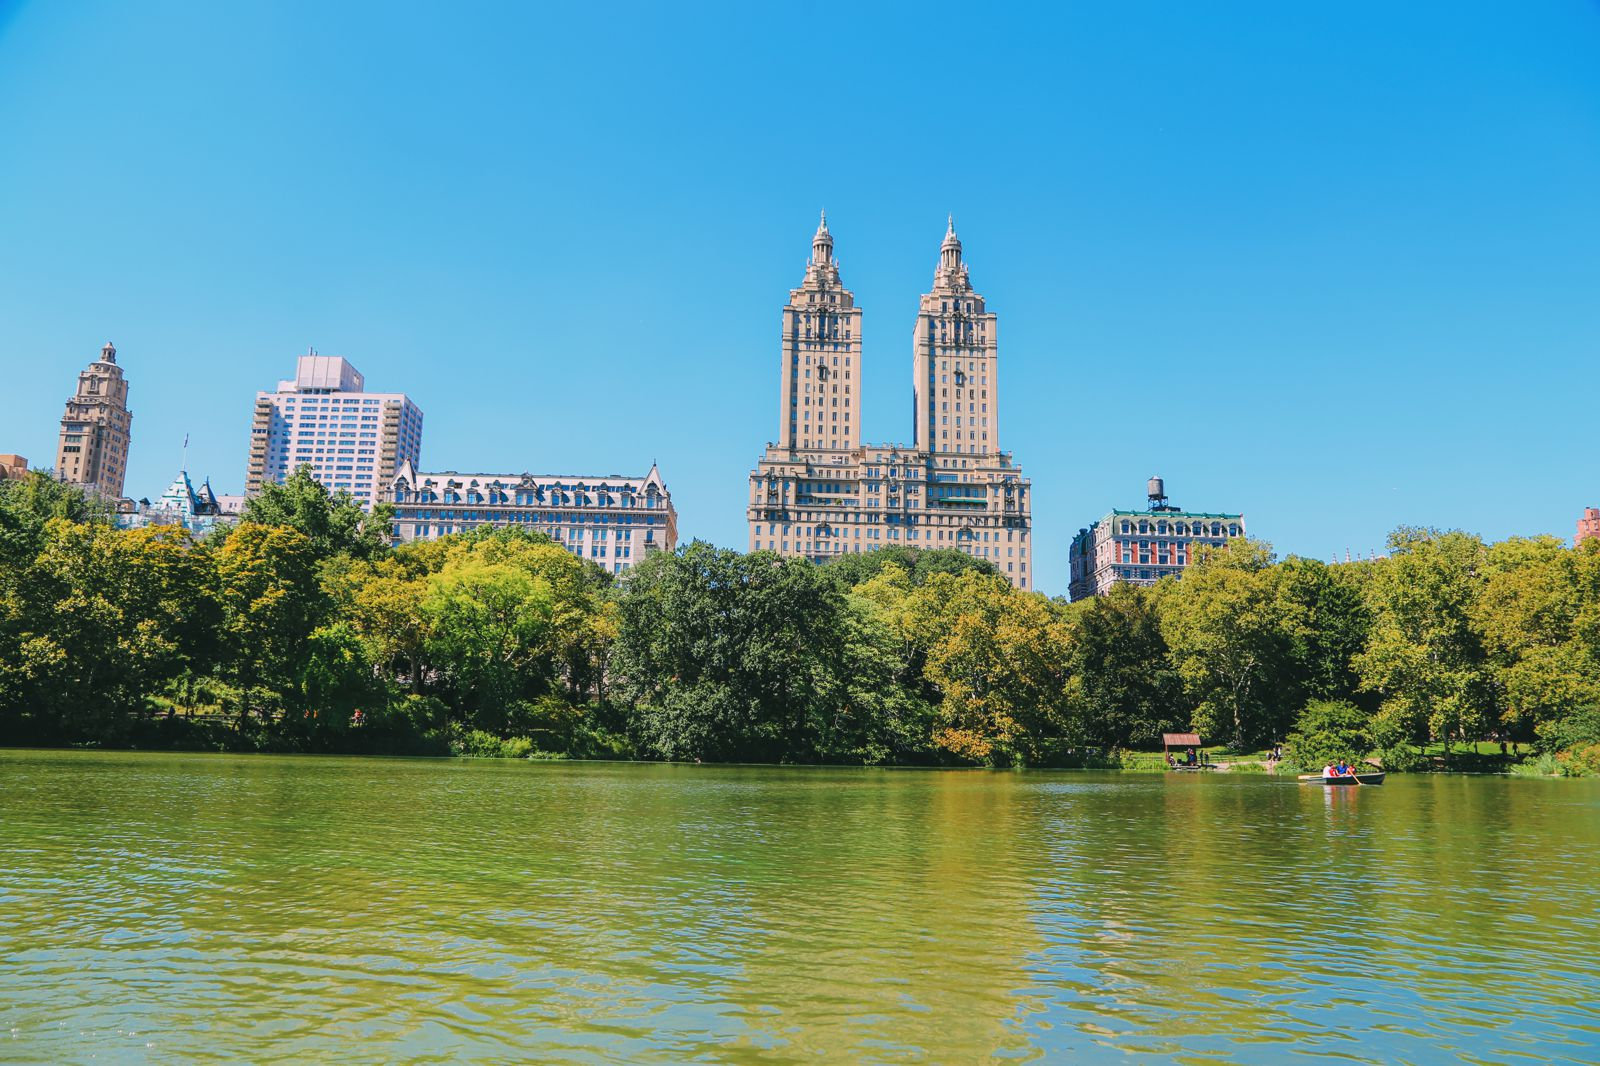 Boating at the Loeb Boathouse in Central Park, New York City (20)